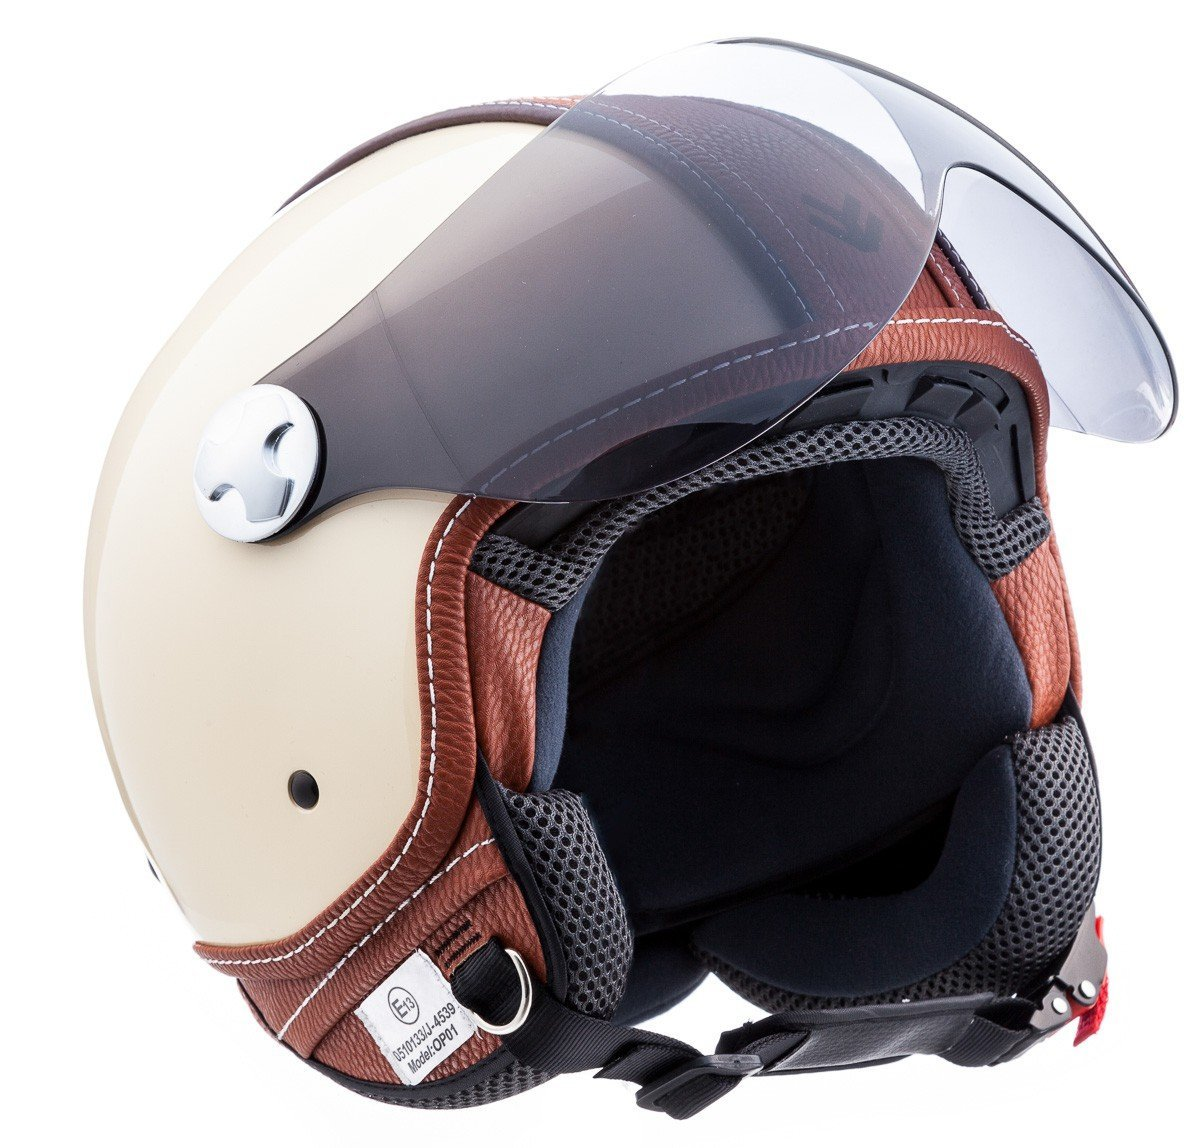 regali-per-motociclisti-amazon-casco-vintage